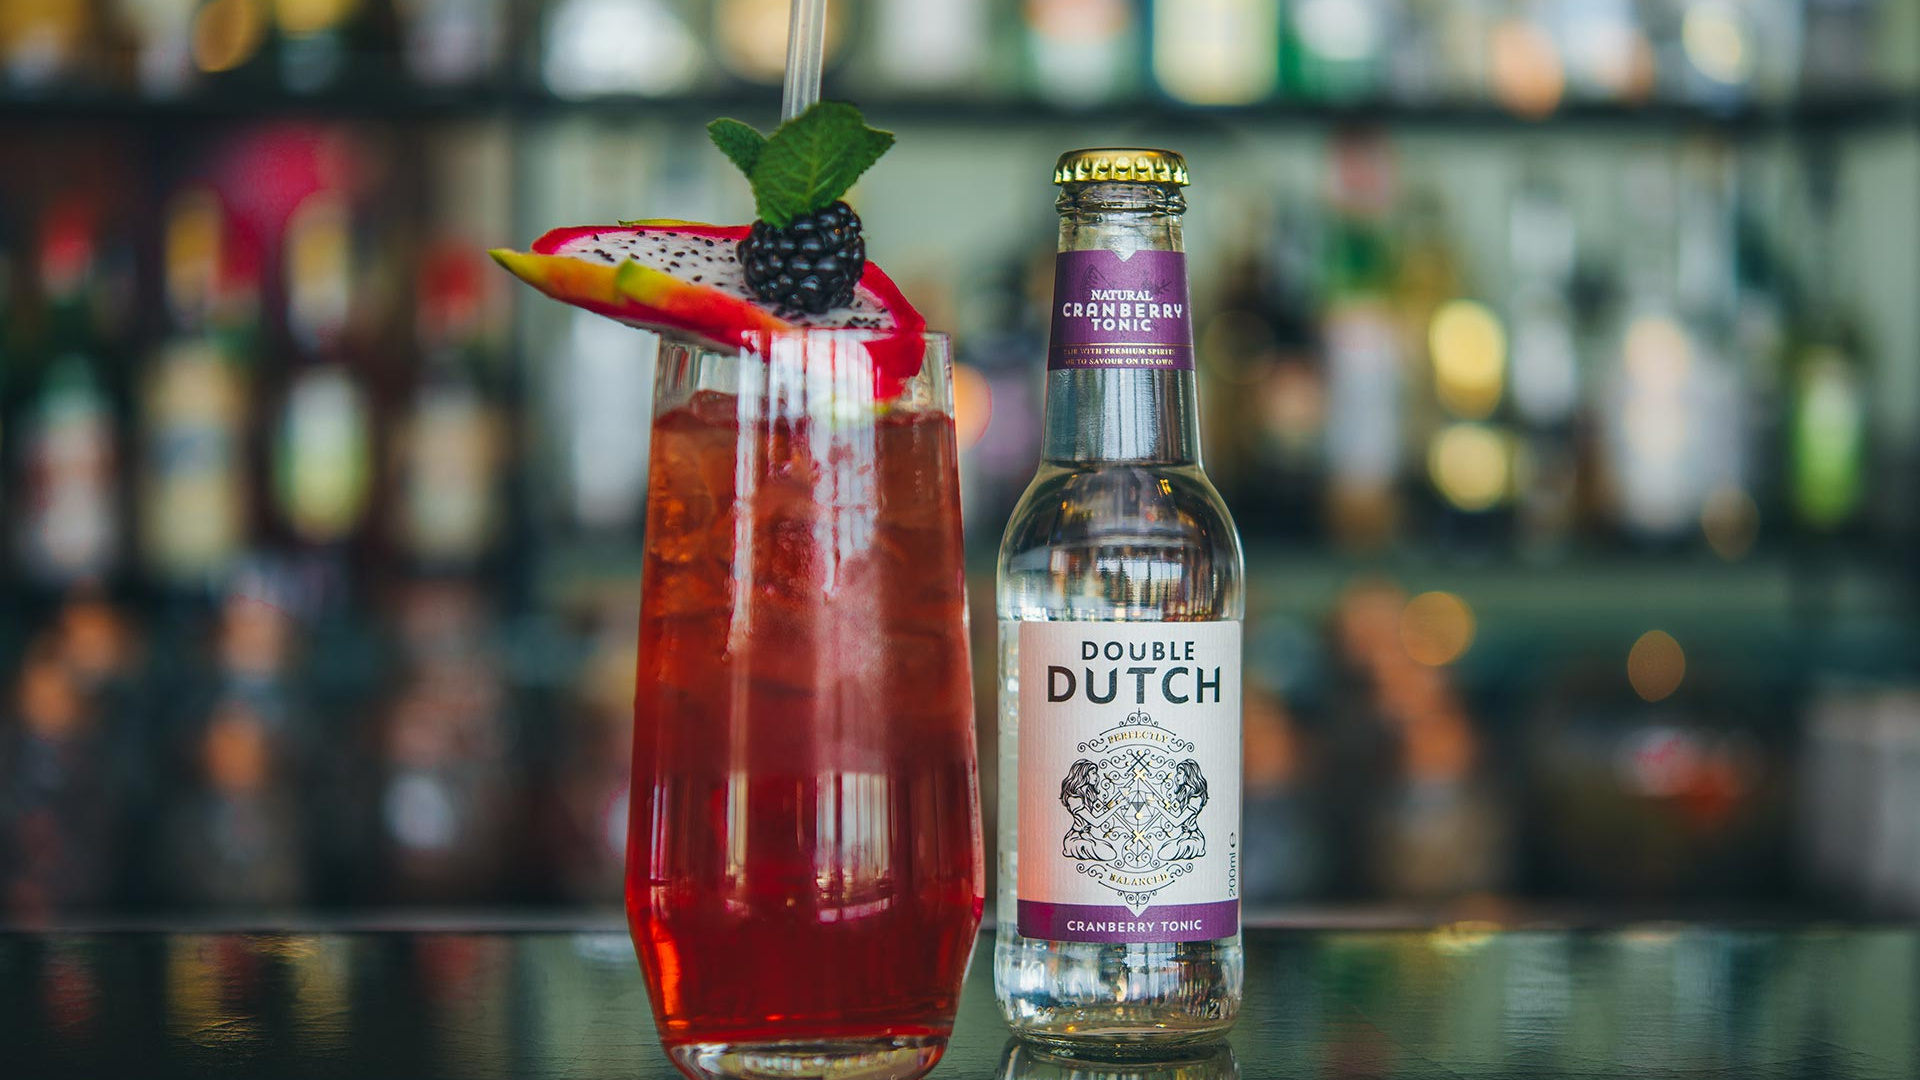 A cocktail made with Double Dutch